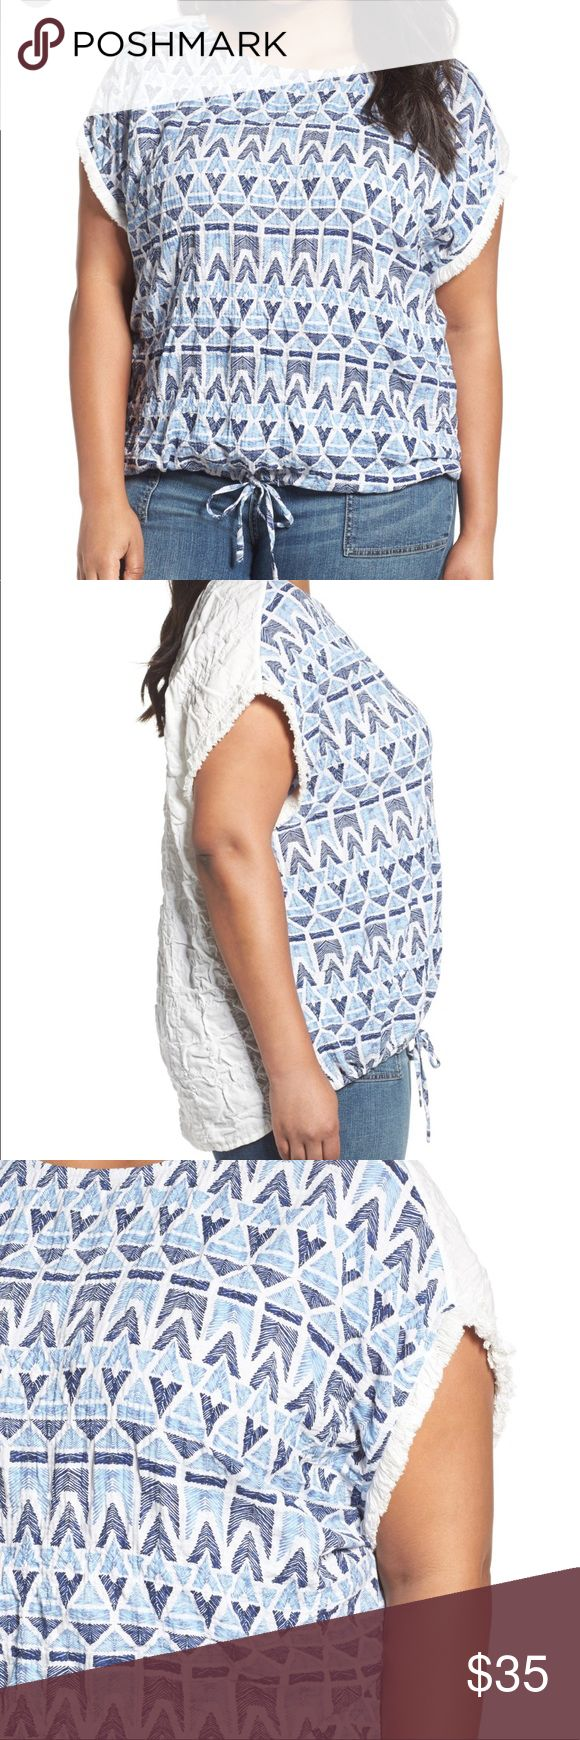 """Caslon Ikat drawstring top plus 2X blue fringe Details  An ikat-inspired print with the look of embroidery, plus fringe trim at the sleeves, puts a summery spin on a drop-shoulder top of puckered stretch cotton. Adding to the easygoing casual look, a drawstring cinches the front hem.  Bust: 28""""  - 25"""" front length; 27"""" back length (size 2X)  - Slips on over head  - Scooped neck  - Short sleeves with fringe trim  - Front drawstring hem  - 99% cotton, 1% spandex  - Machine wash, line dry…"""